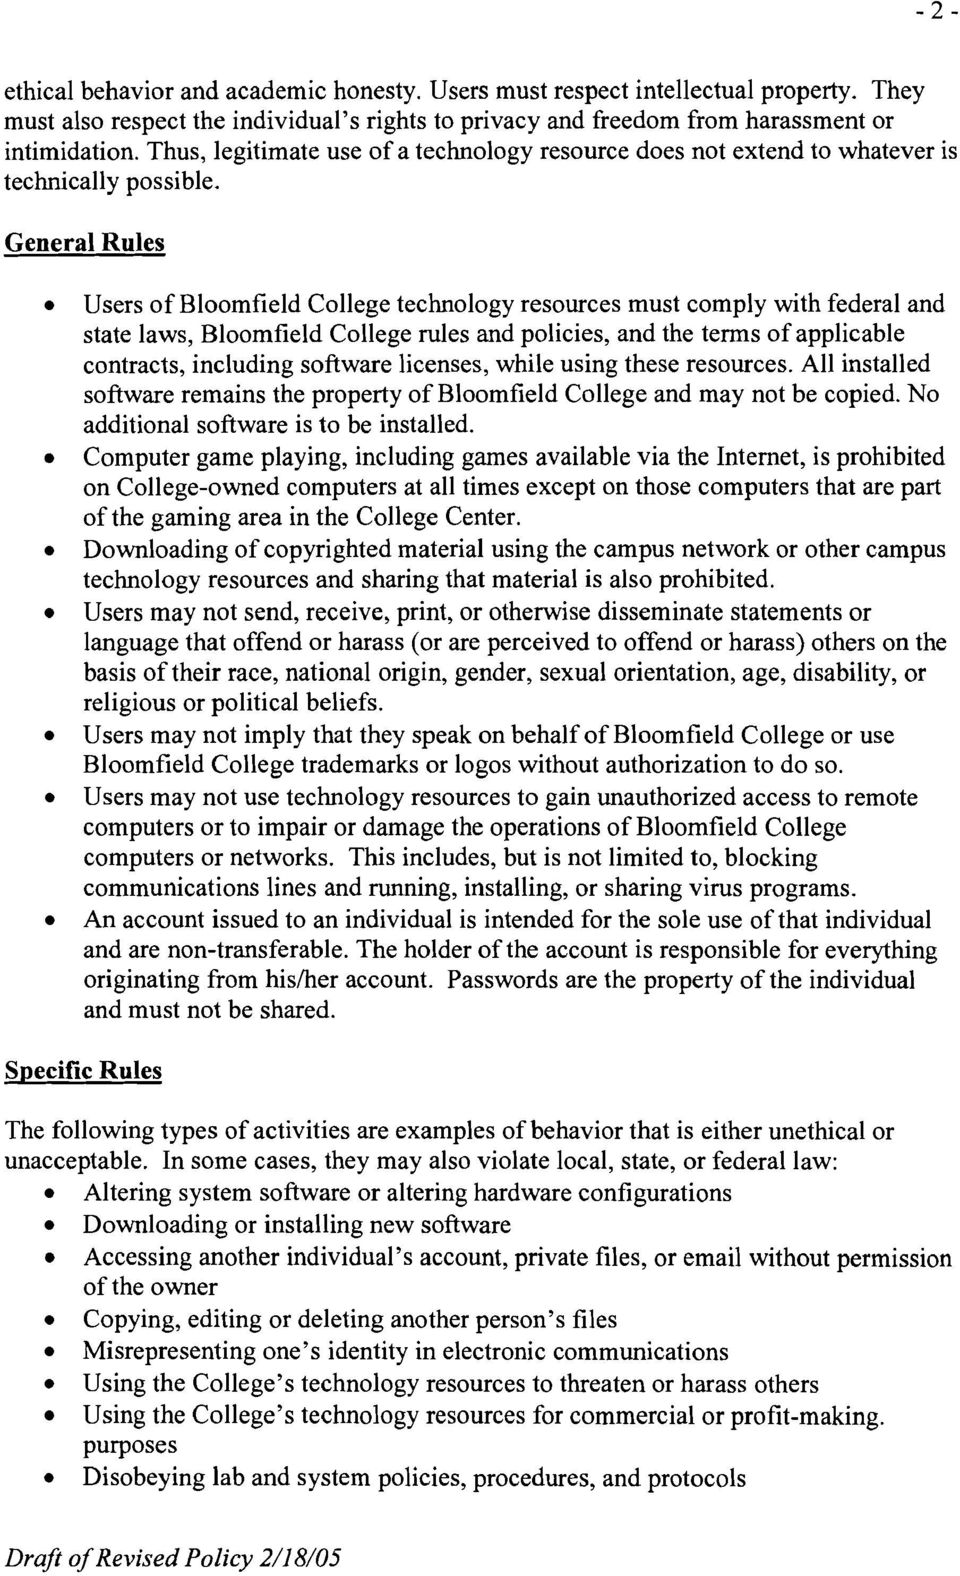 General Rules Users of Bloomfield College technology resources must comply with federal and state laws, Bloomfield College rules and policies, and the terms of applicable contracts, including